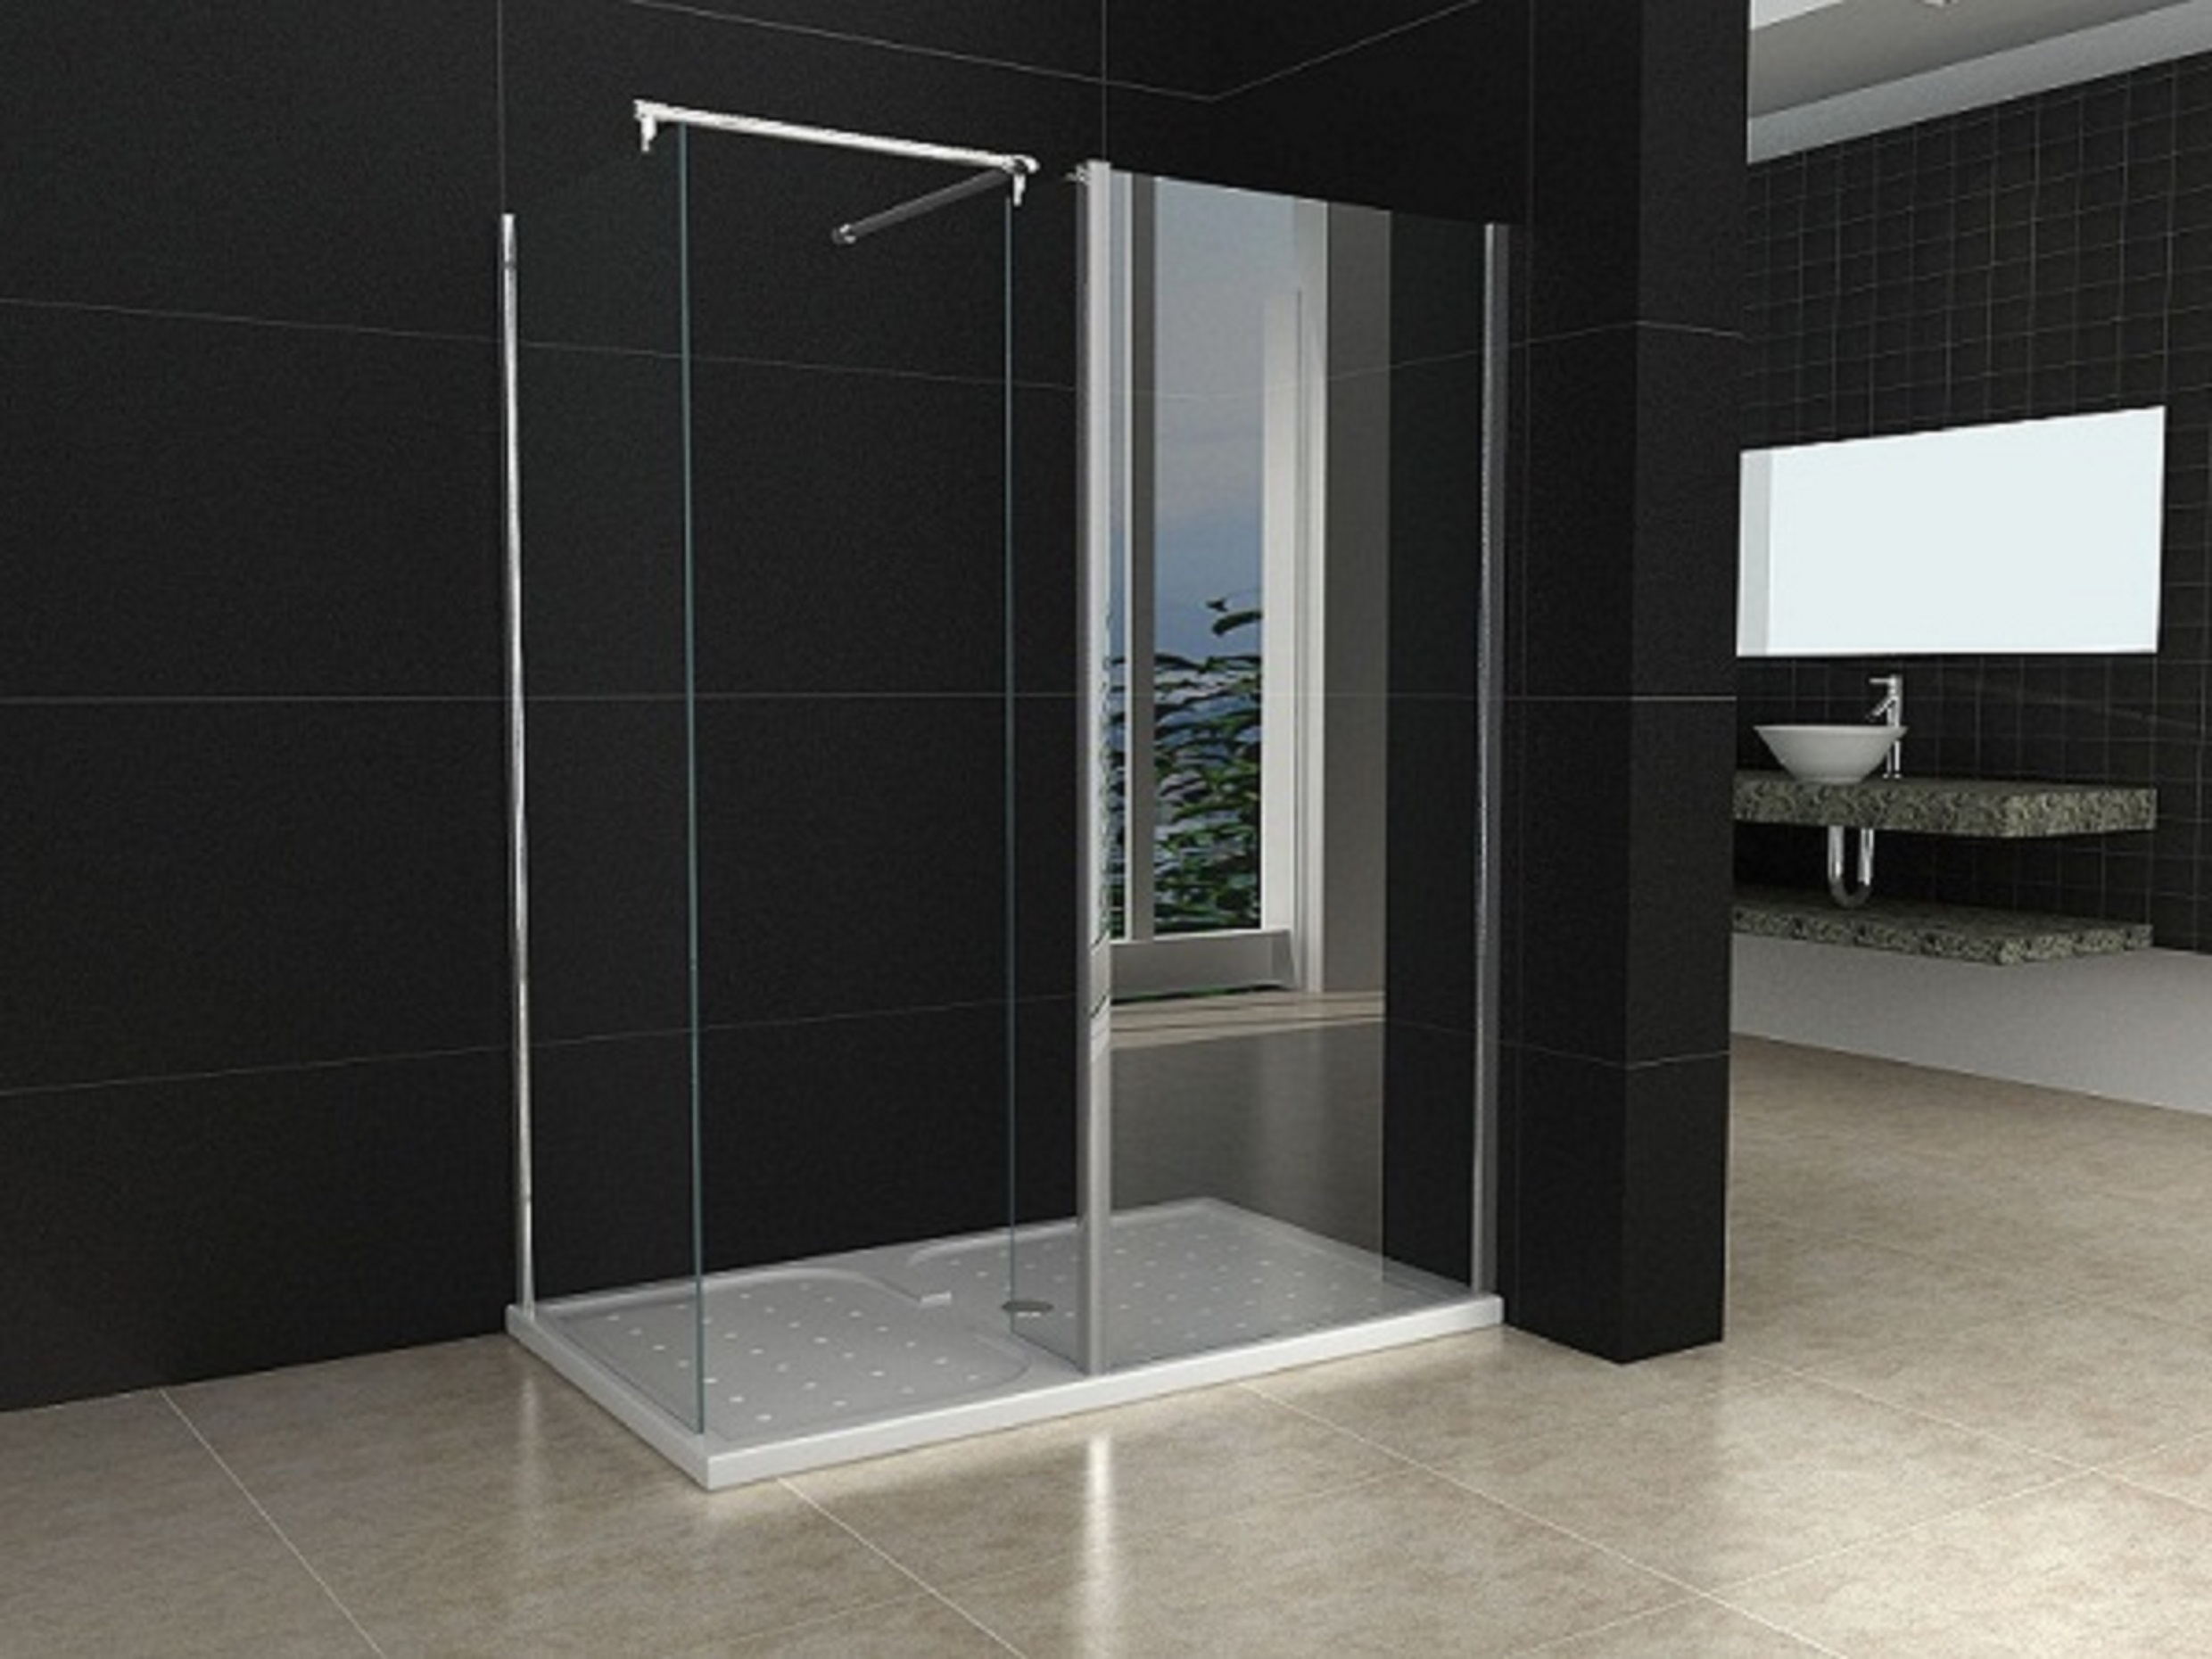 1200x800mm Walk in Shower Enclosure Door + Shower Tray + Trap Waste | eBay & 1200x800mm Walk in Shower Enclosure Door + Shower Tray + Trap Waste ...